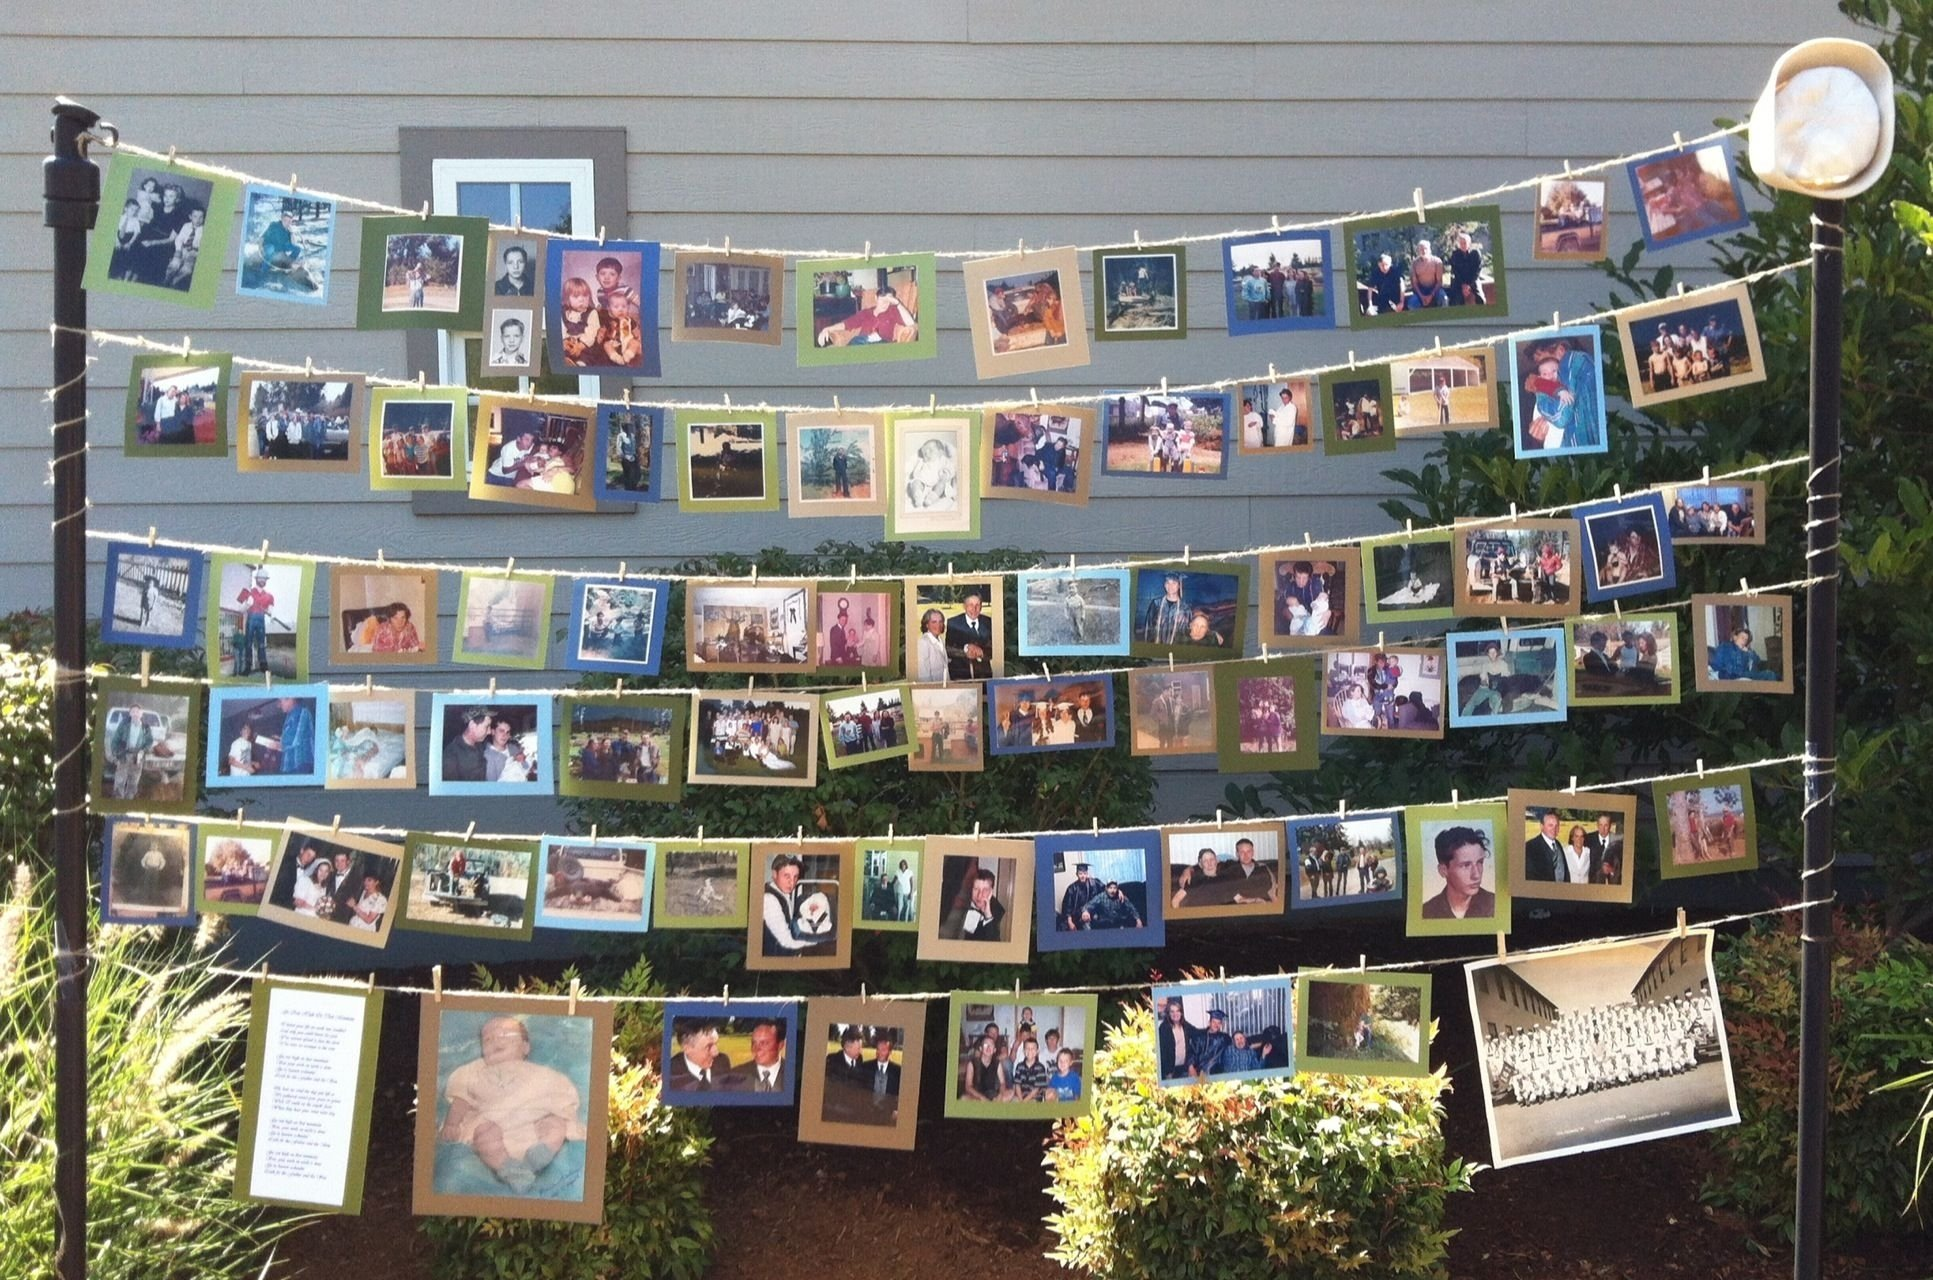 10 Most Popular Ideas For A Memorial Service memorial service photo display to be made into scrapbook after 2021